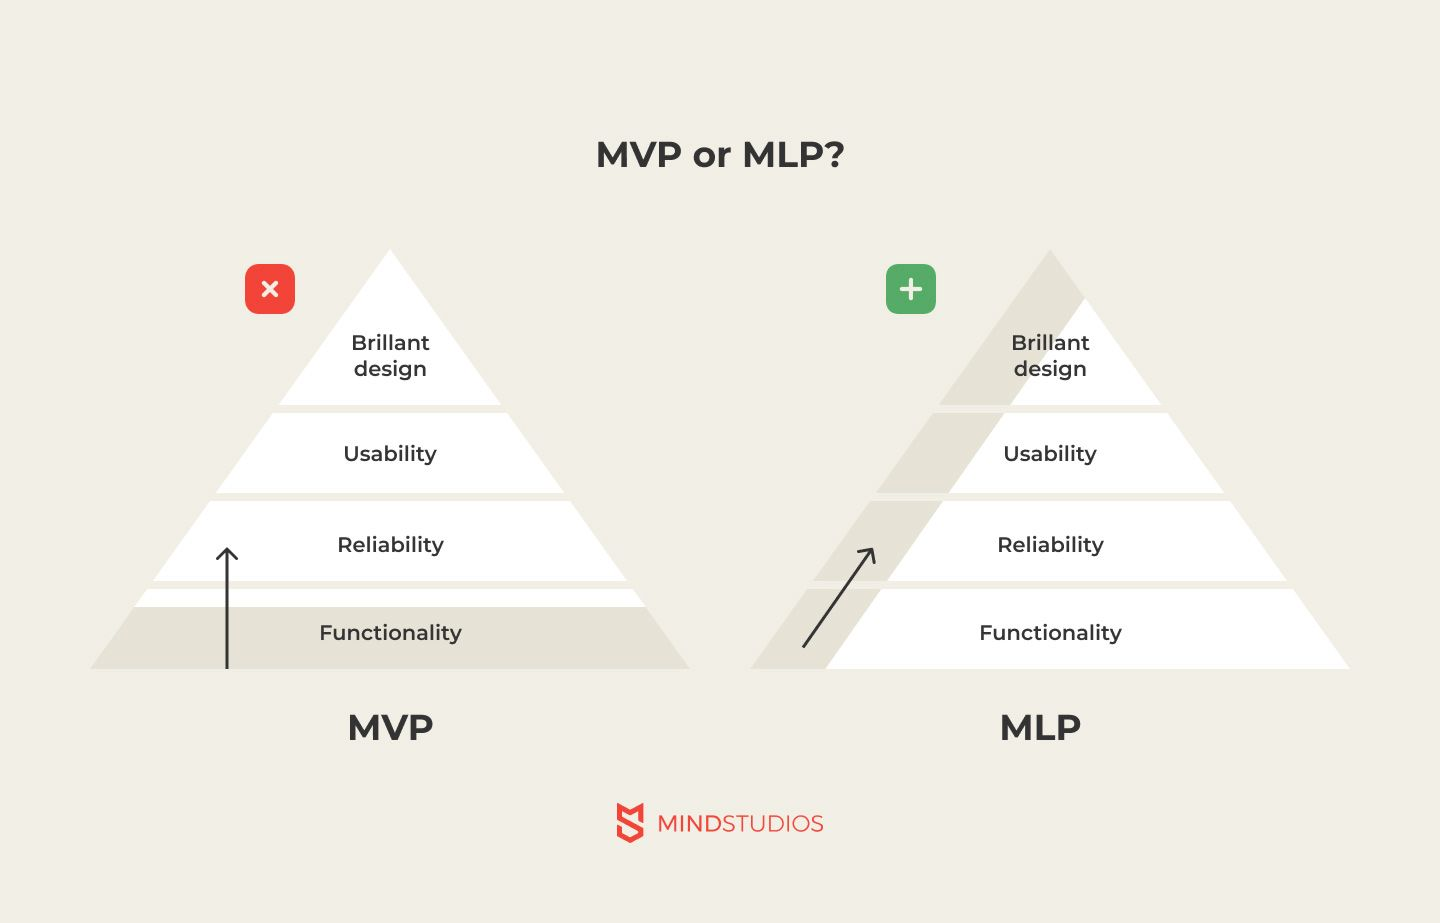 MVP or MLP for clubhouse-like app